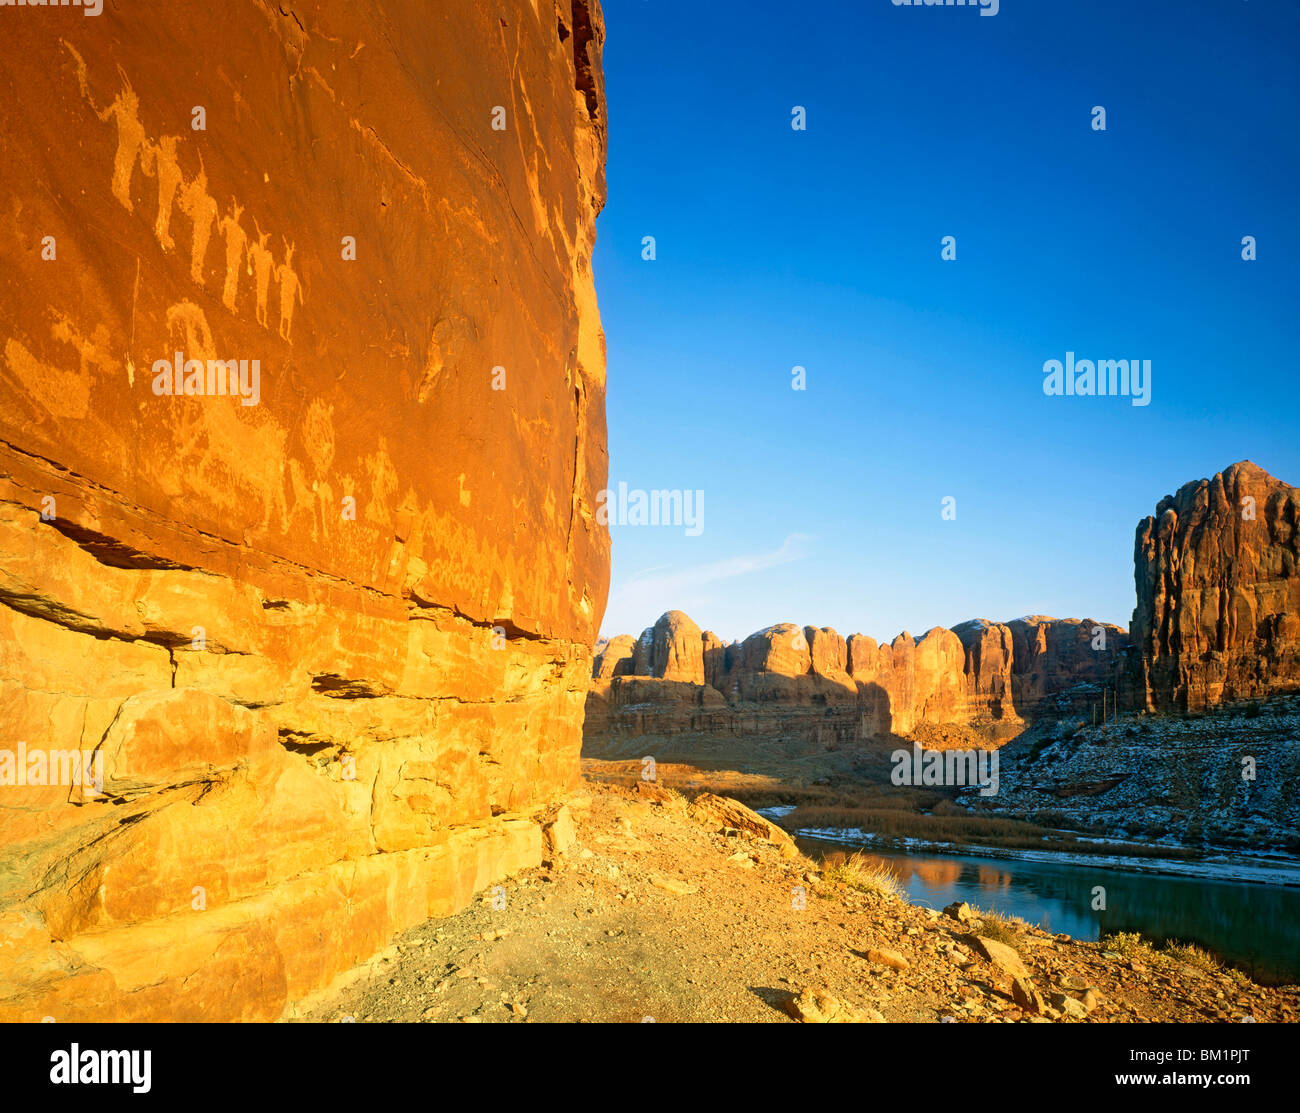 Anasazi Petroglyphs at Sunset along the Colorado River  Utah - Stock Image